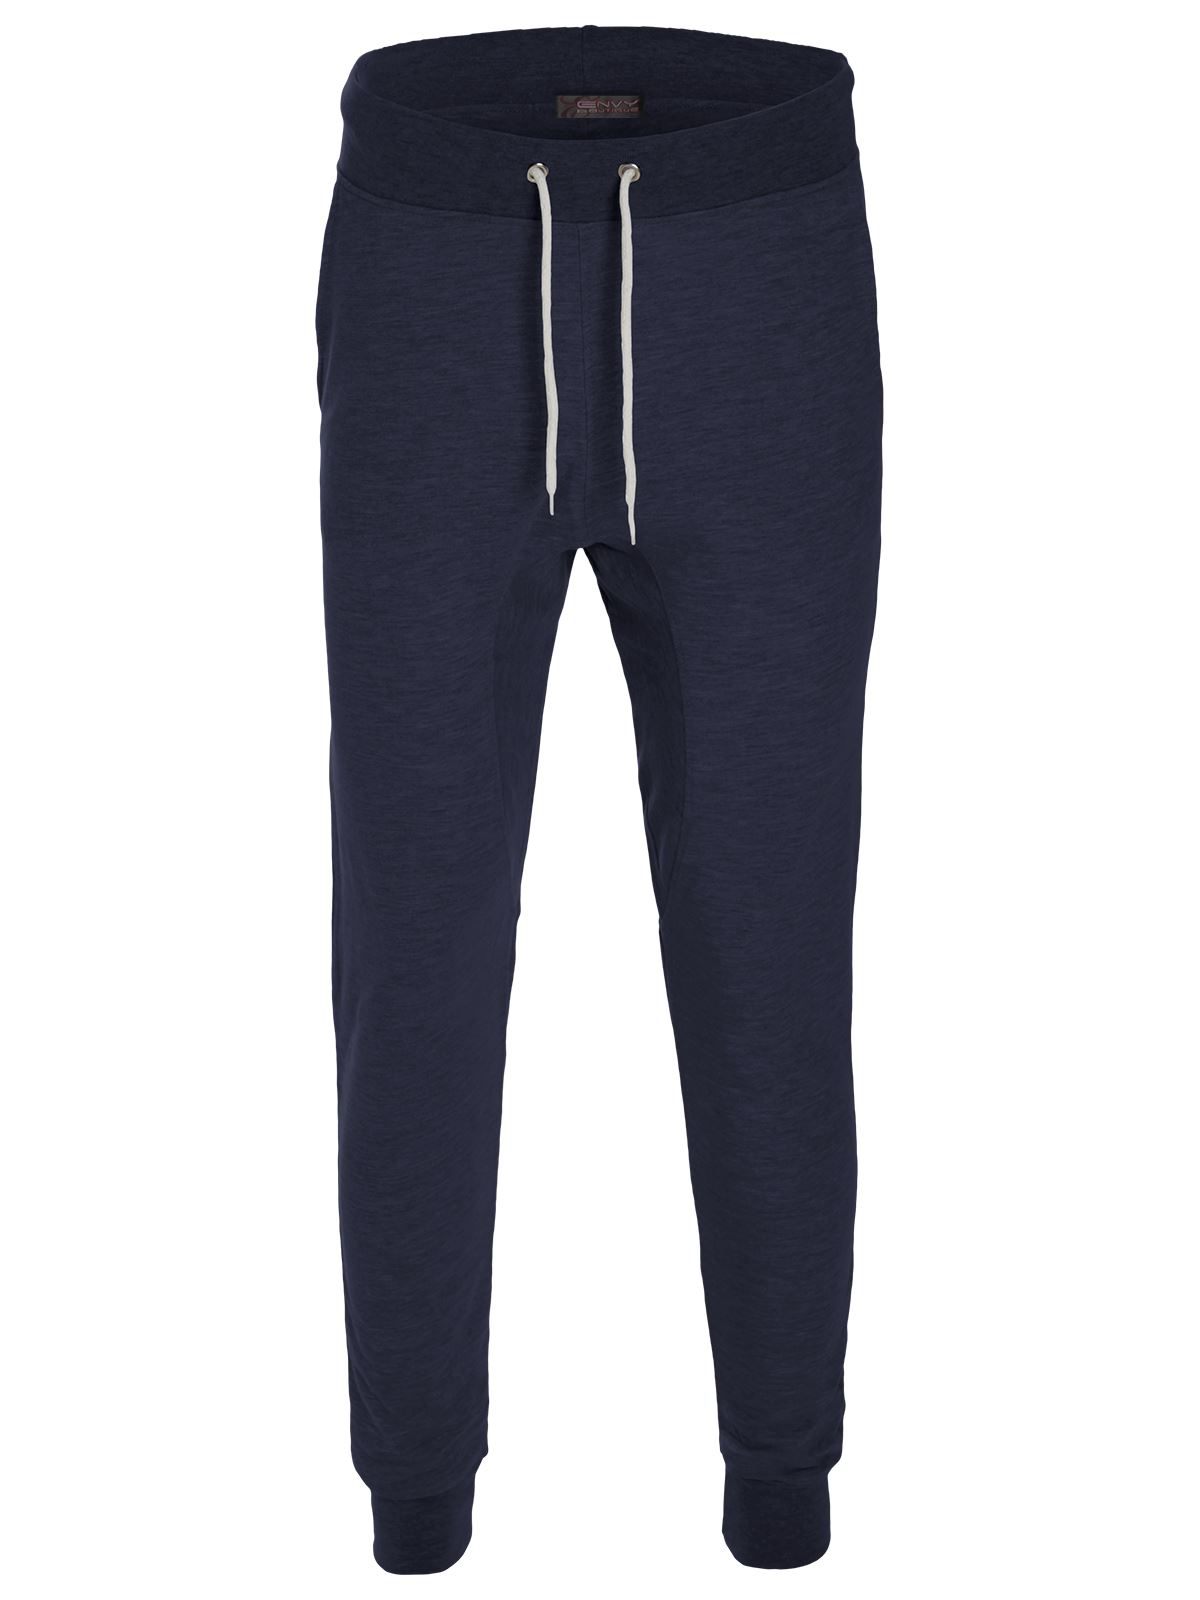 Shop online for Men's Joggers & Sweatpants at 24software.ml Find a tapered fit perfect for casual wear. Free Shipping. Free Returns. All the time.